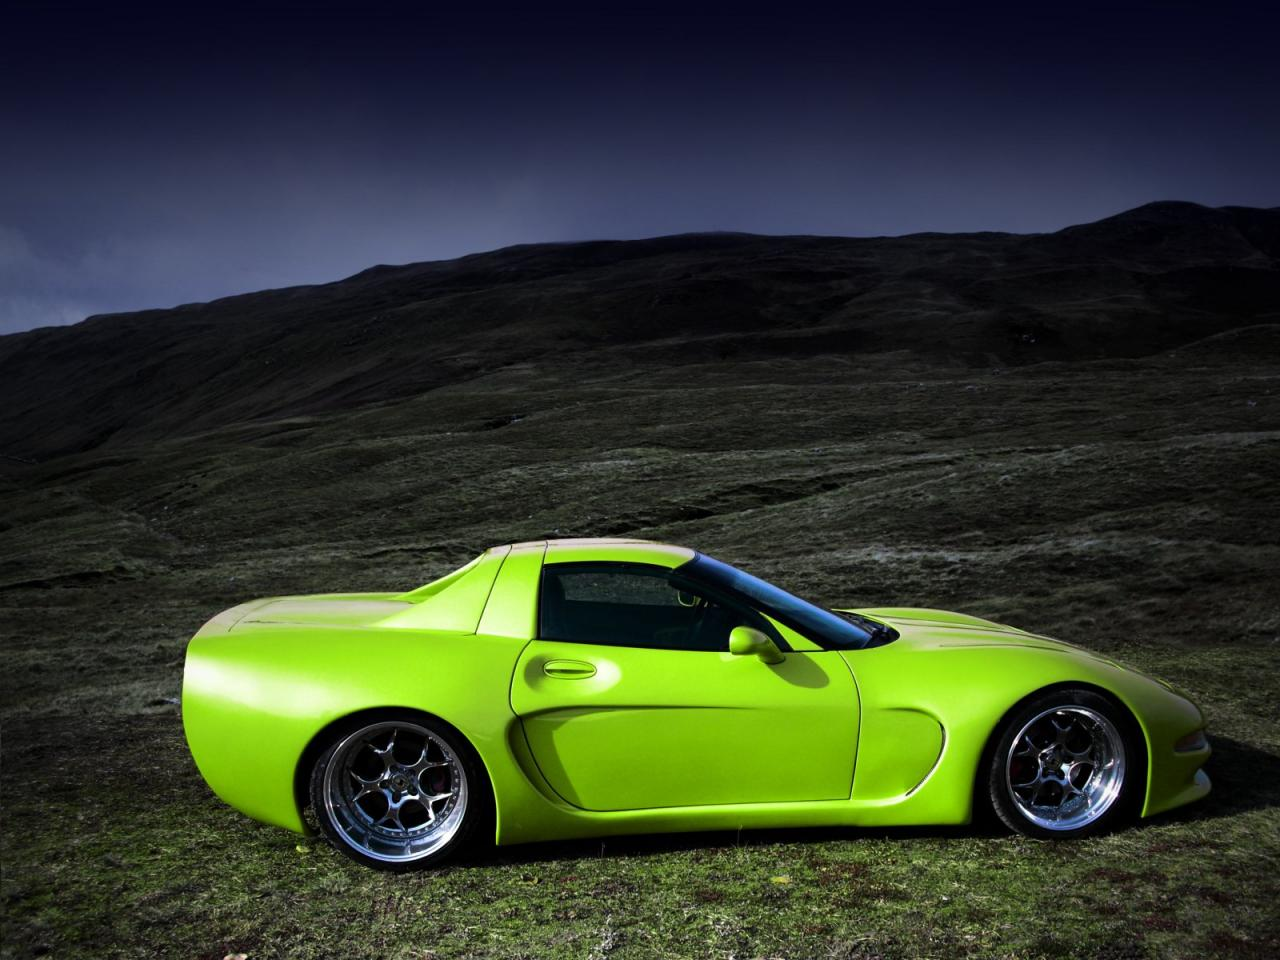 Chevrolet Corvette C5 By Wittera Car Tuning Styling